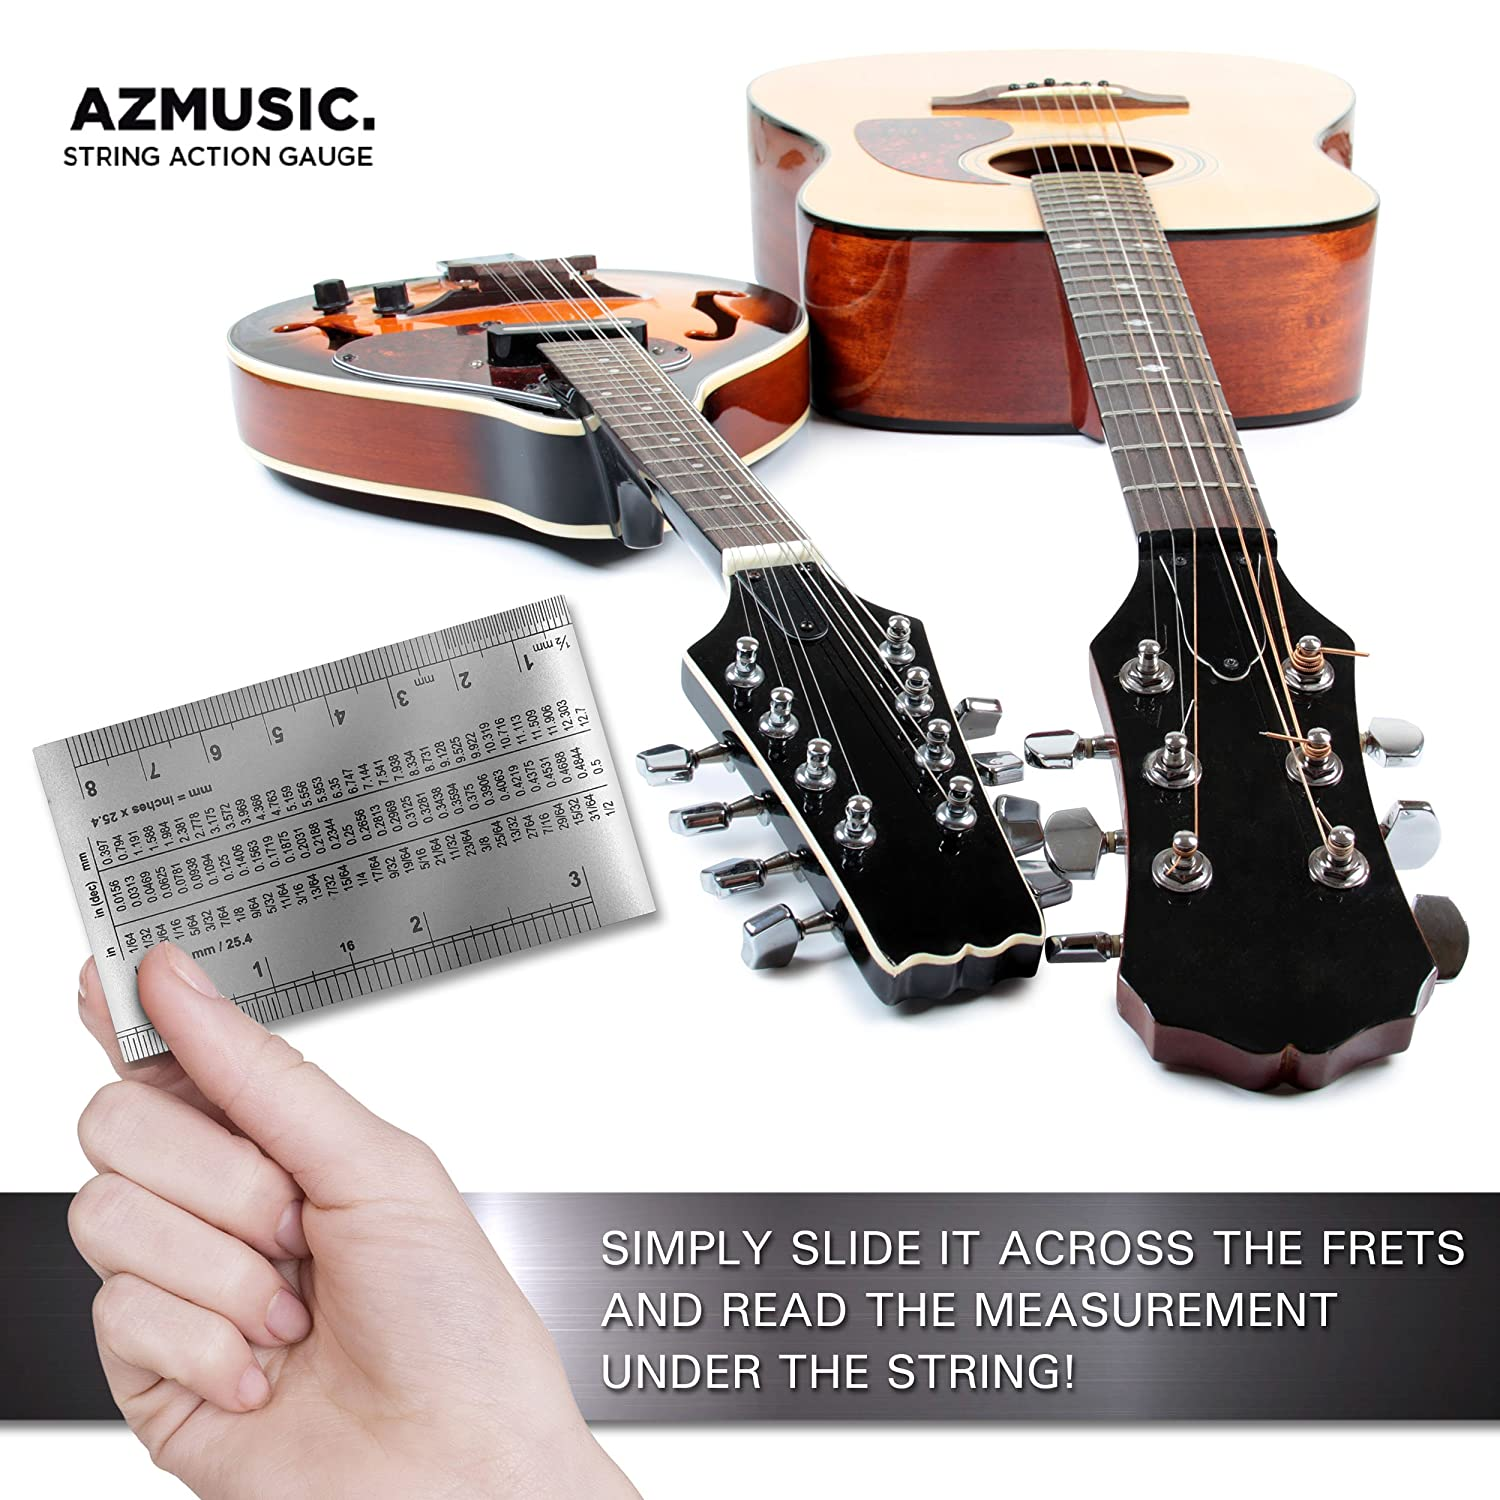 azmusic string action ruler gauge tool for accurate